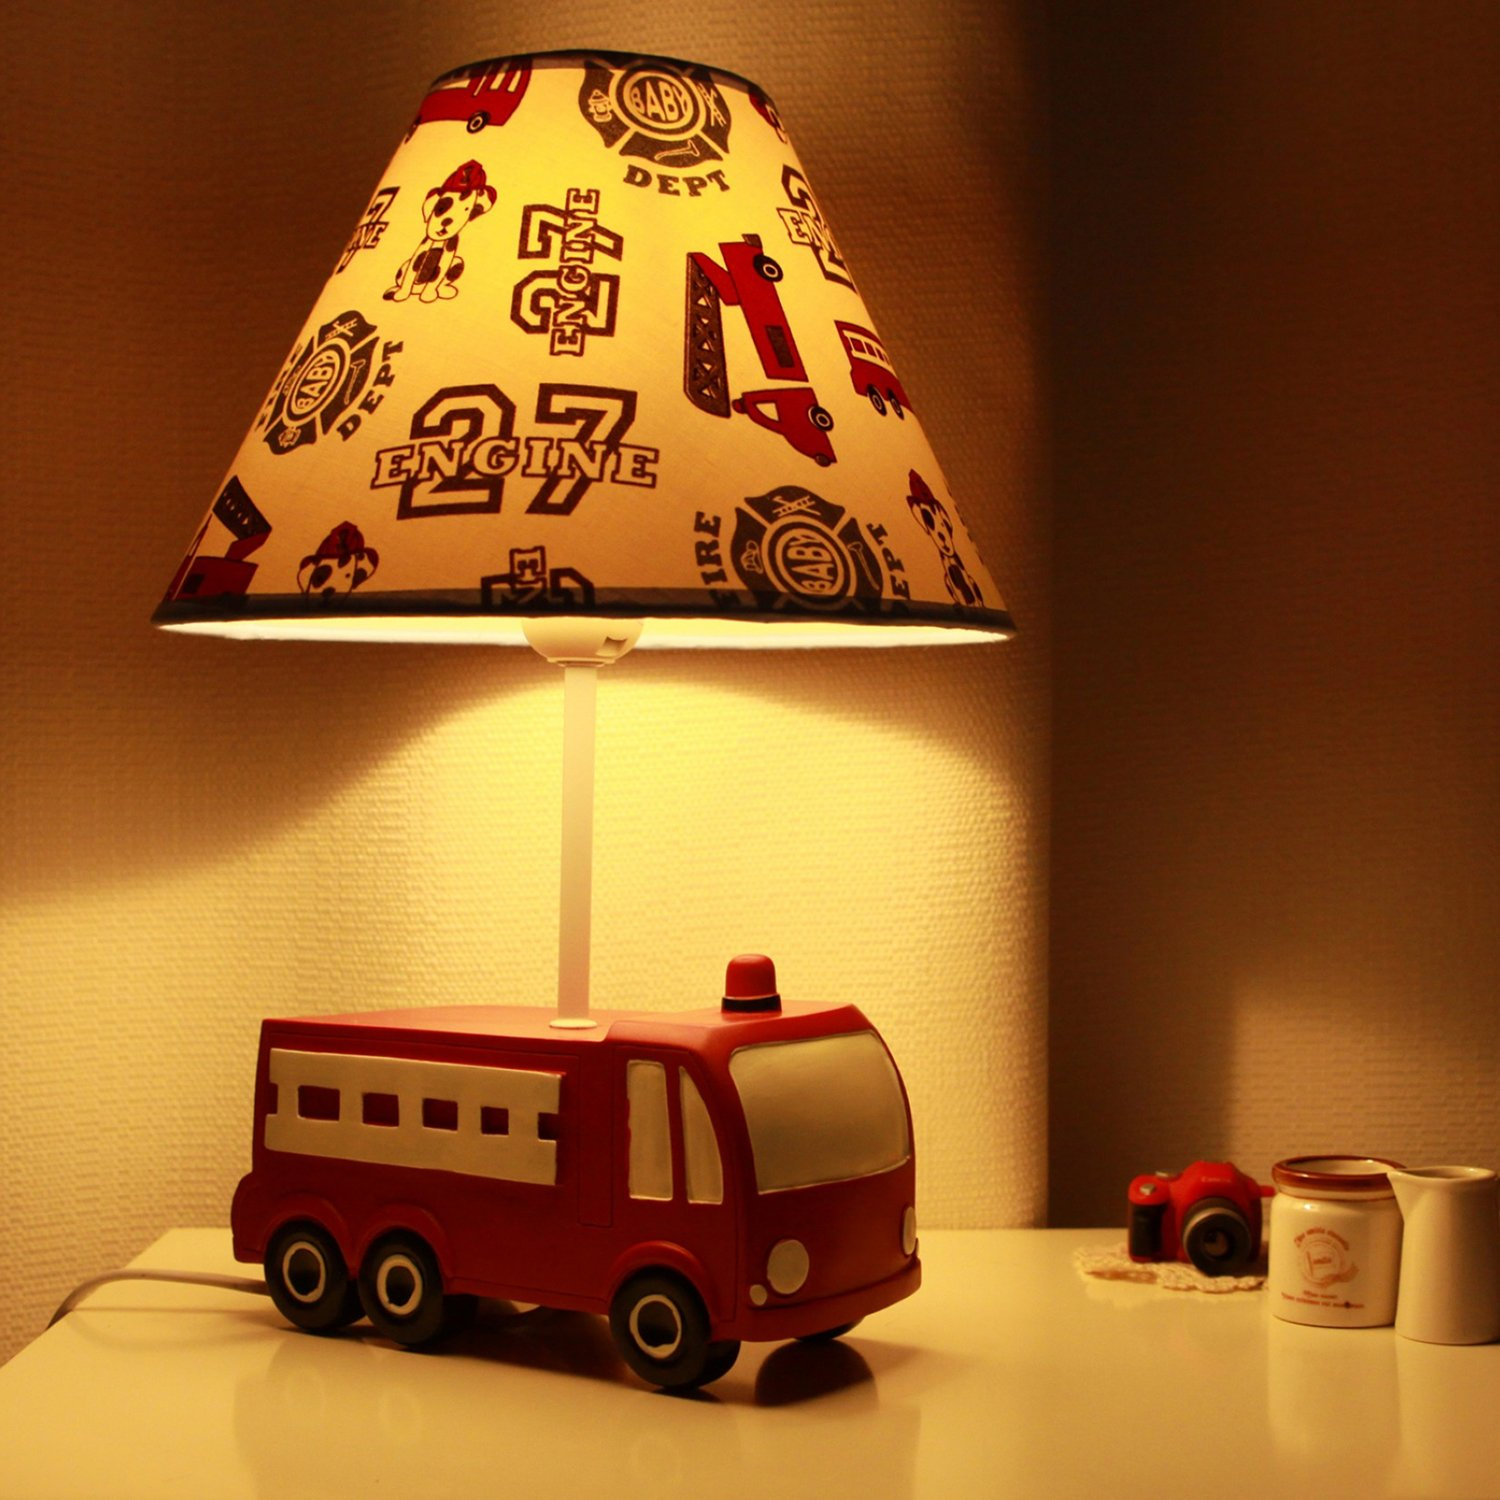 Fire Truck Kids Table Lamp Transportation Imagination Inspiring Bedside Lamps with Fabric Odorless Lampshade for Boy's Bedroom, Sturdy, Nursery yiiyaa